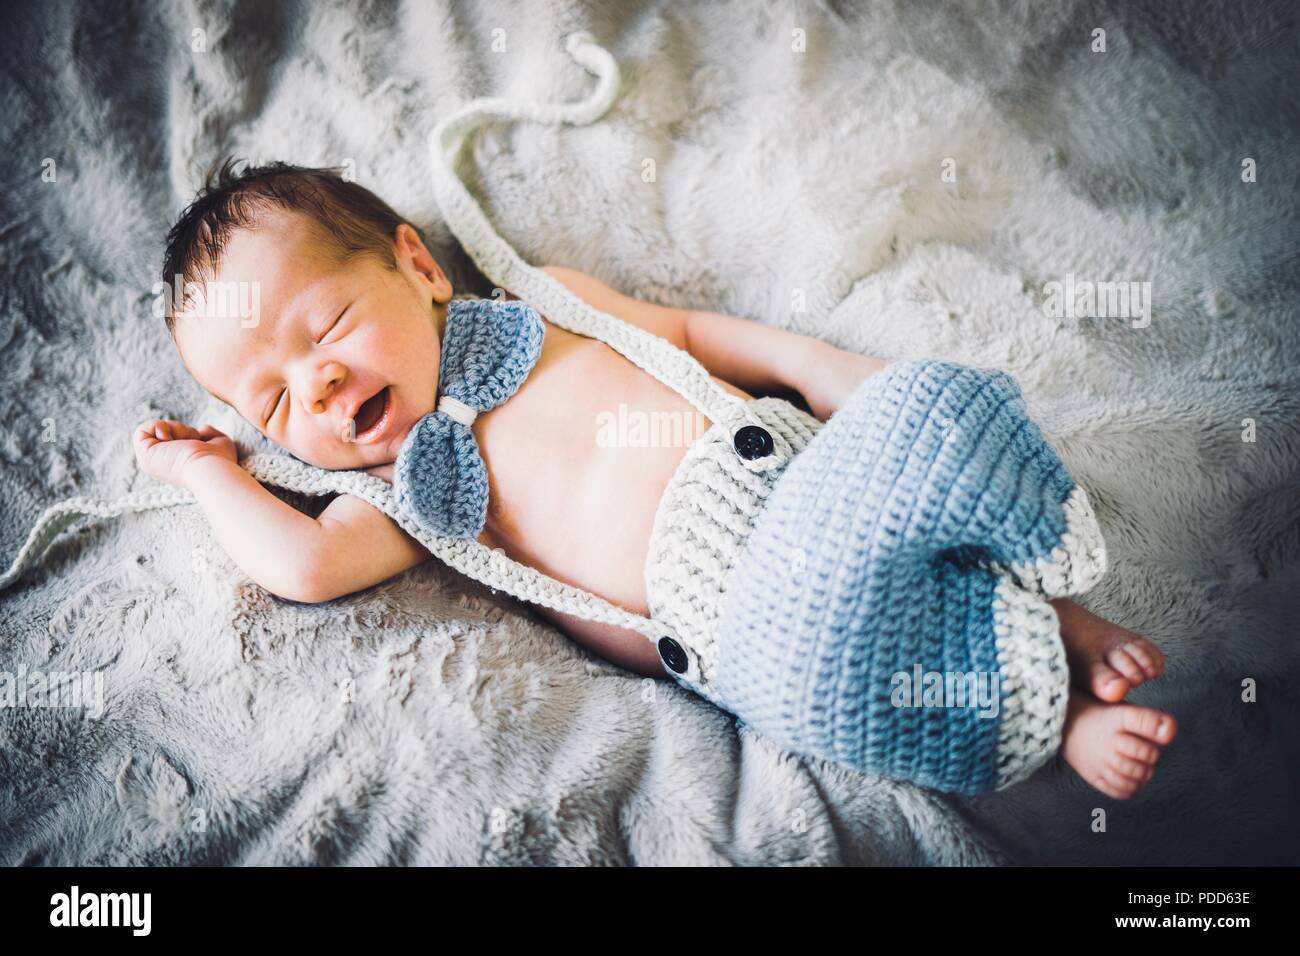 A newborn baby boy sleeping in blue and grey knitted bow tie and trousers - Stock Image